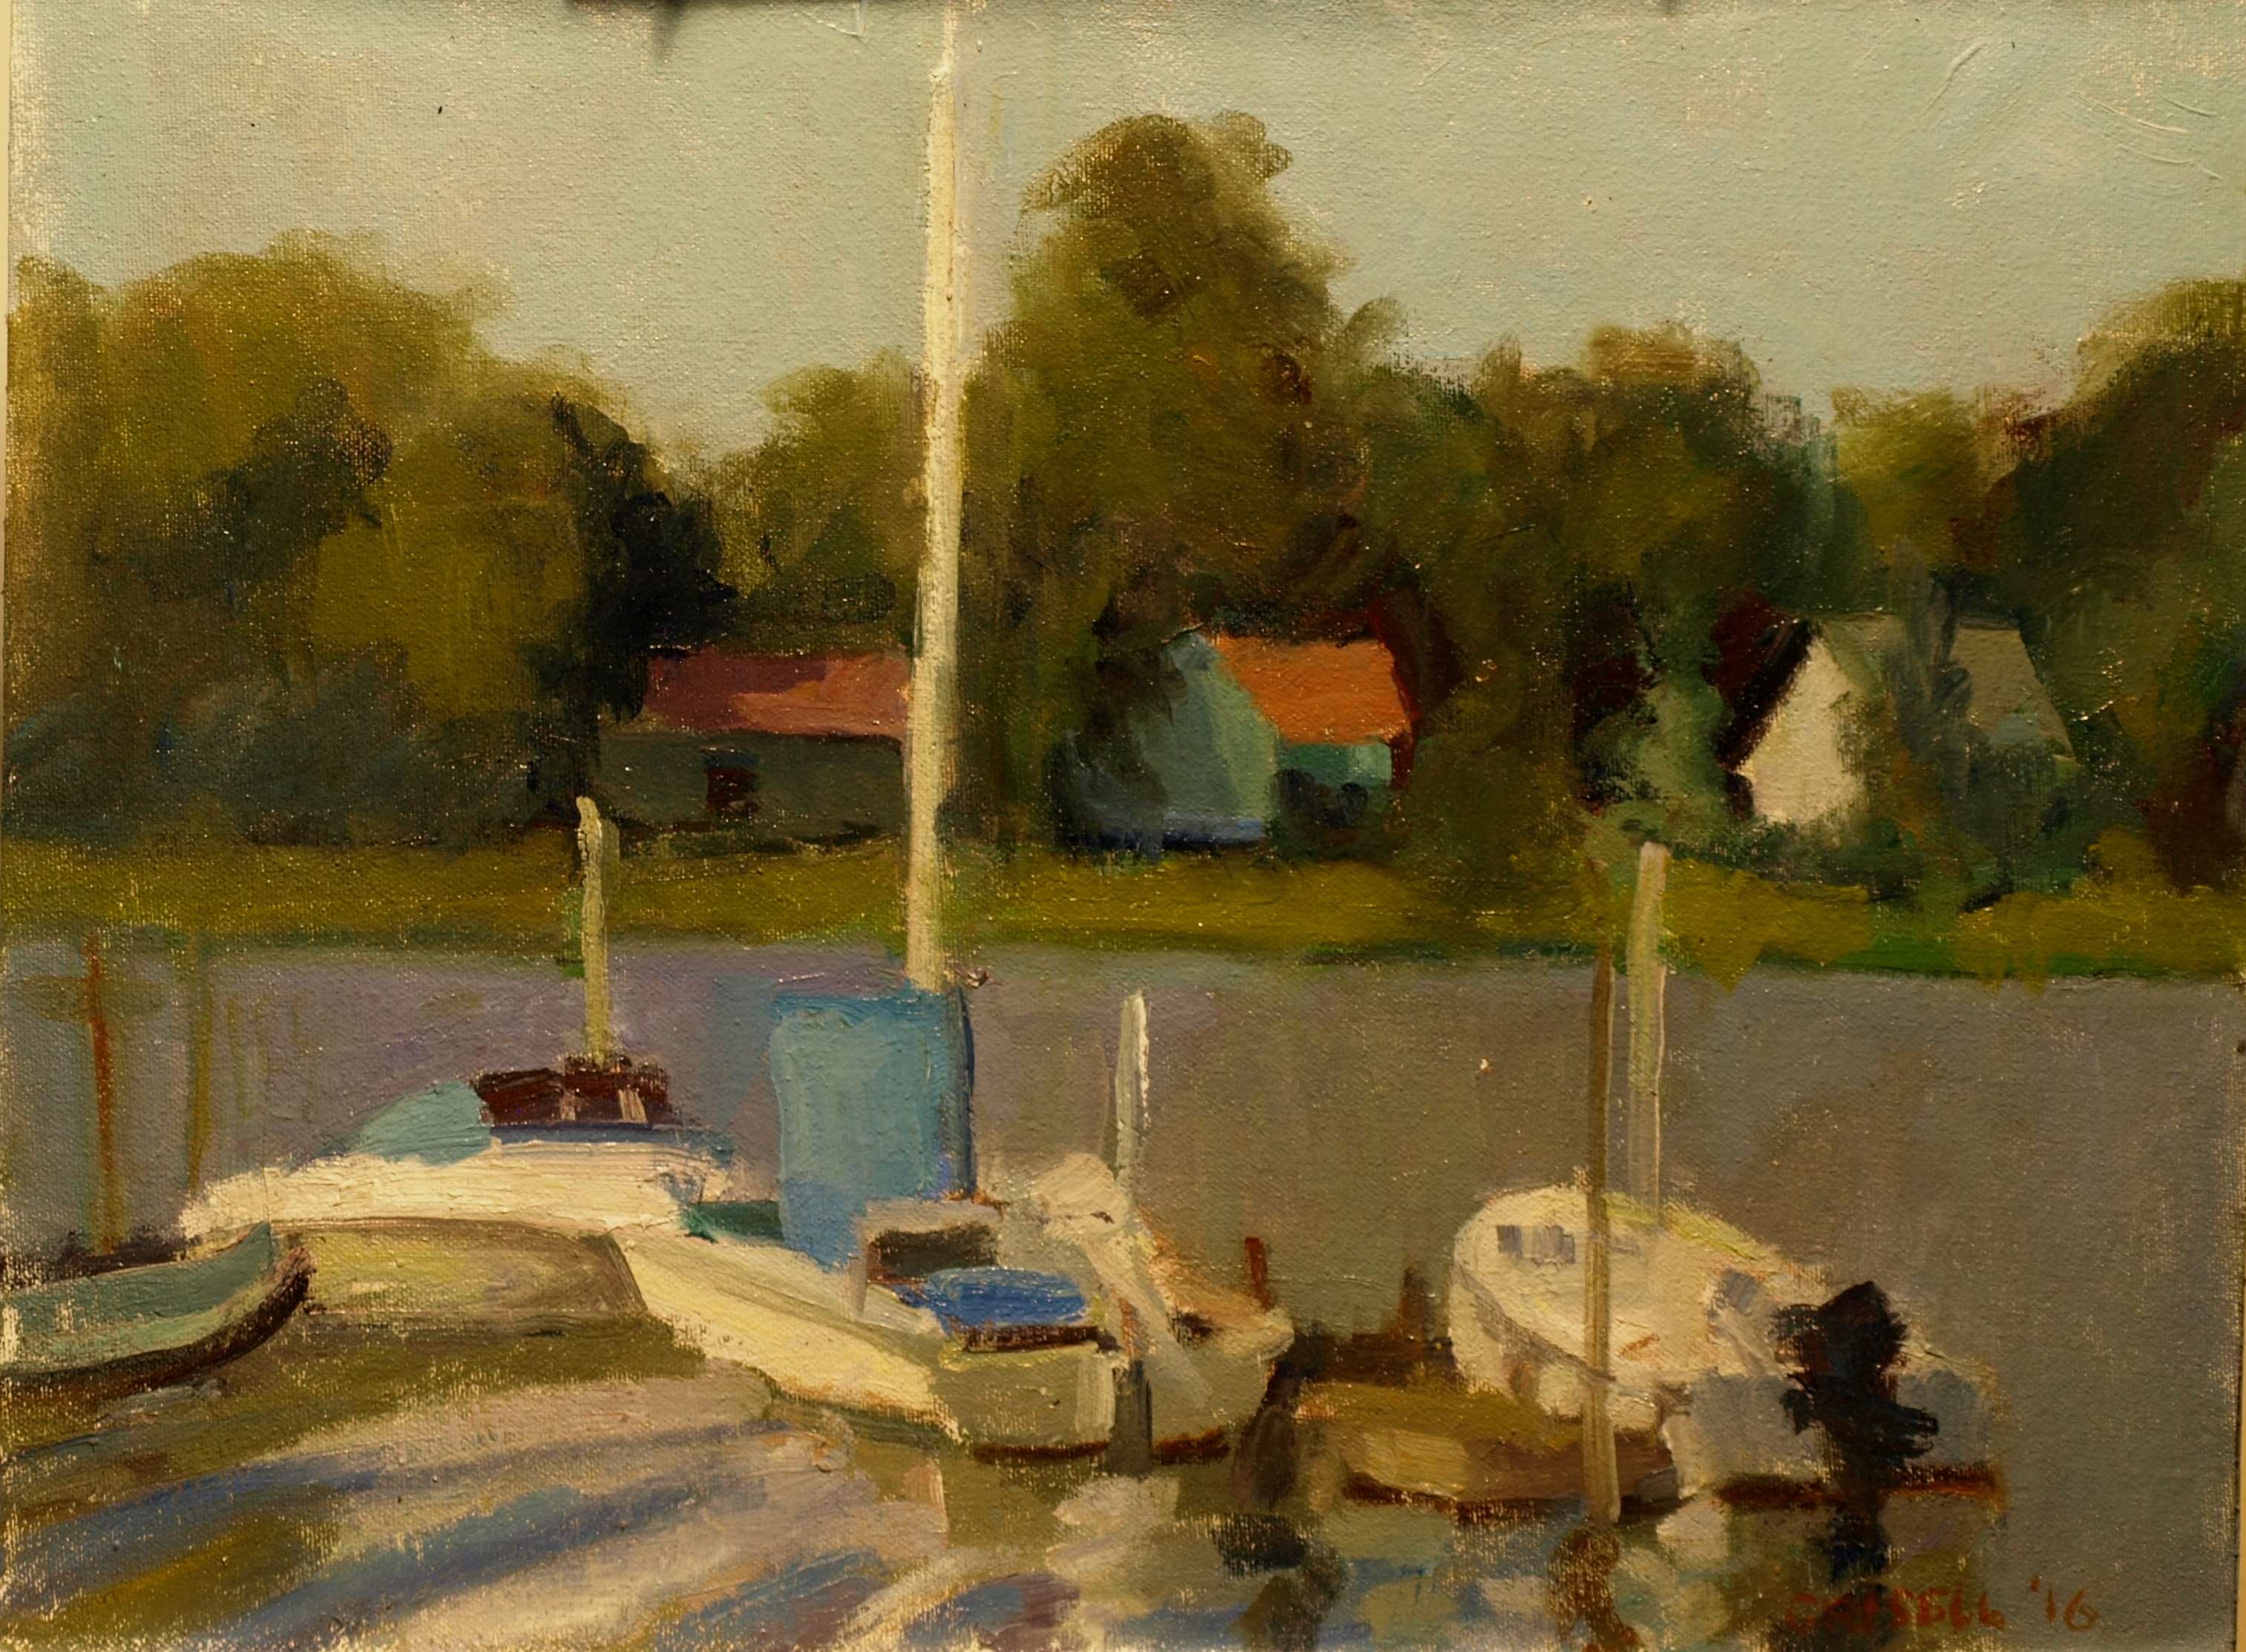 Docked Sailboat, Oil on Canvas on Panel, 12 x 16 Inches, by Susan Grisell, $300